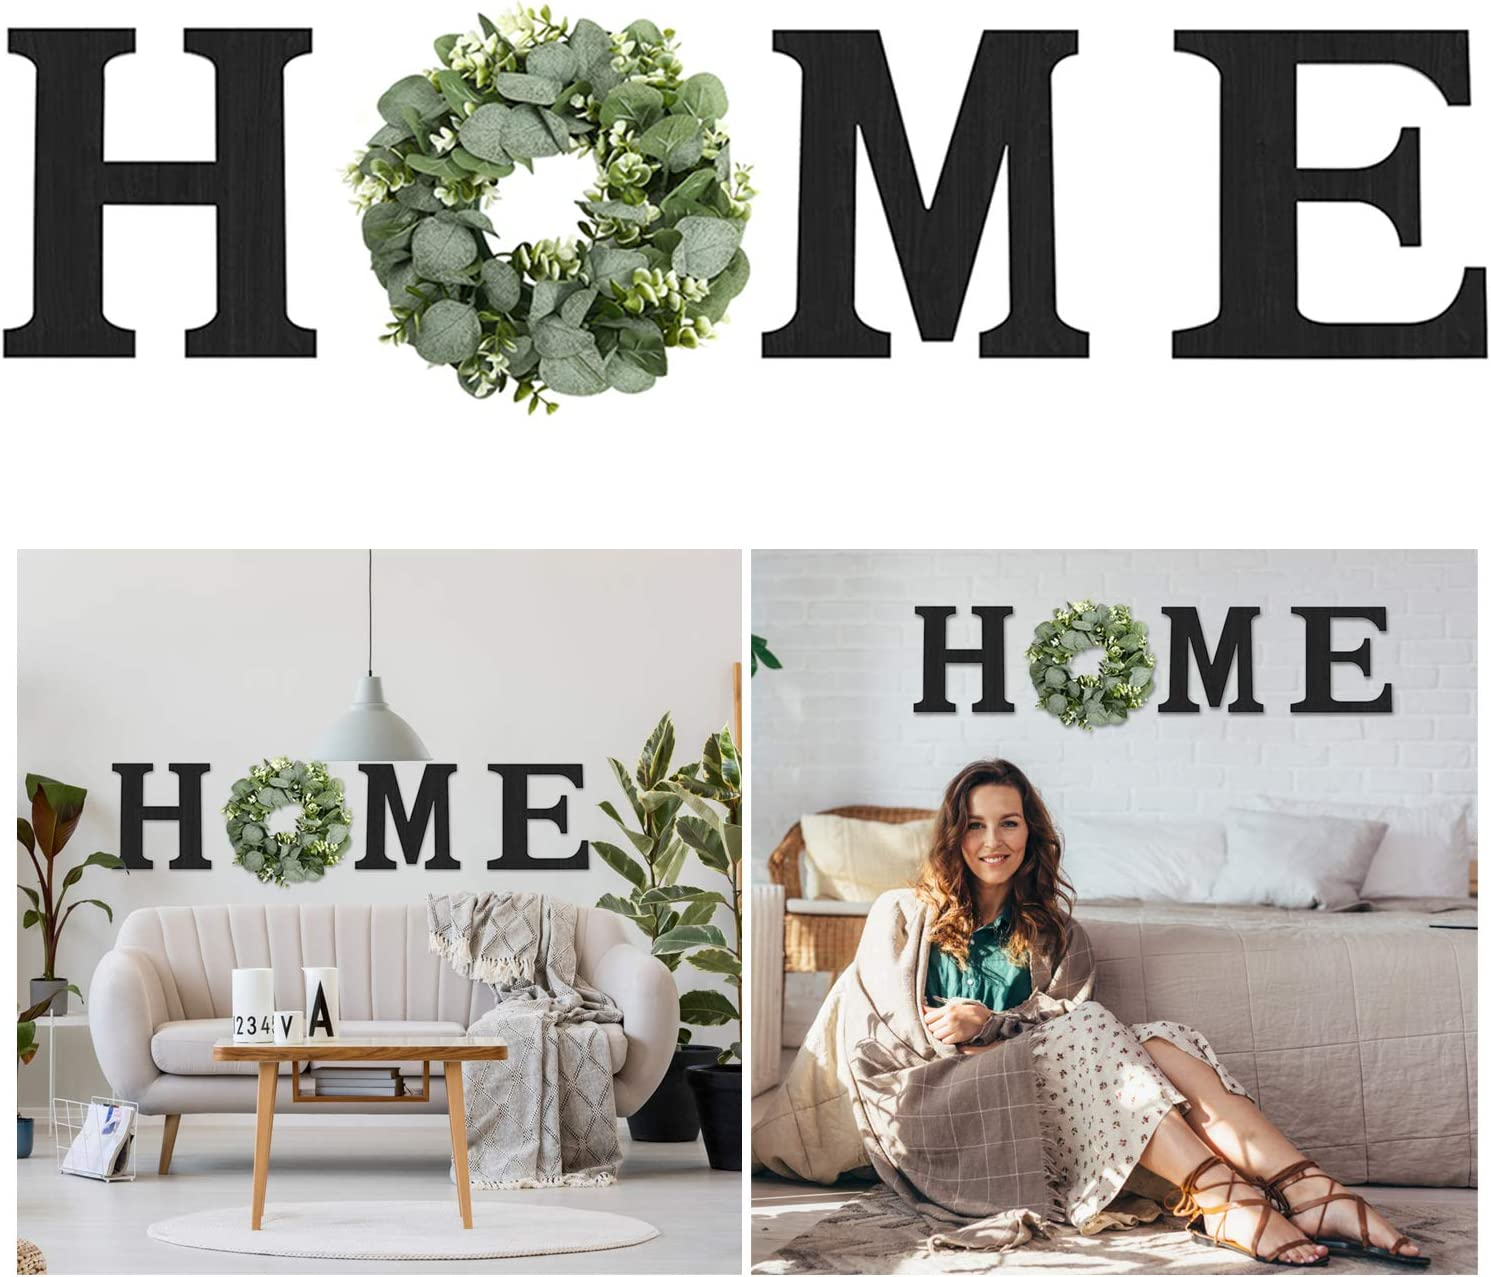 Hanging Wood Home Sign with Artificial Eucalyptus Wreath for O, Wall Hanging Decor - Wood Home Letters for Wall Art Rustic Home Decor, Wall Decor for Living Room Kitchen Housewarming Gift